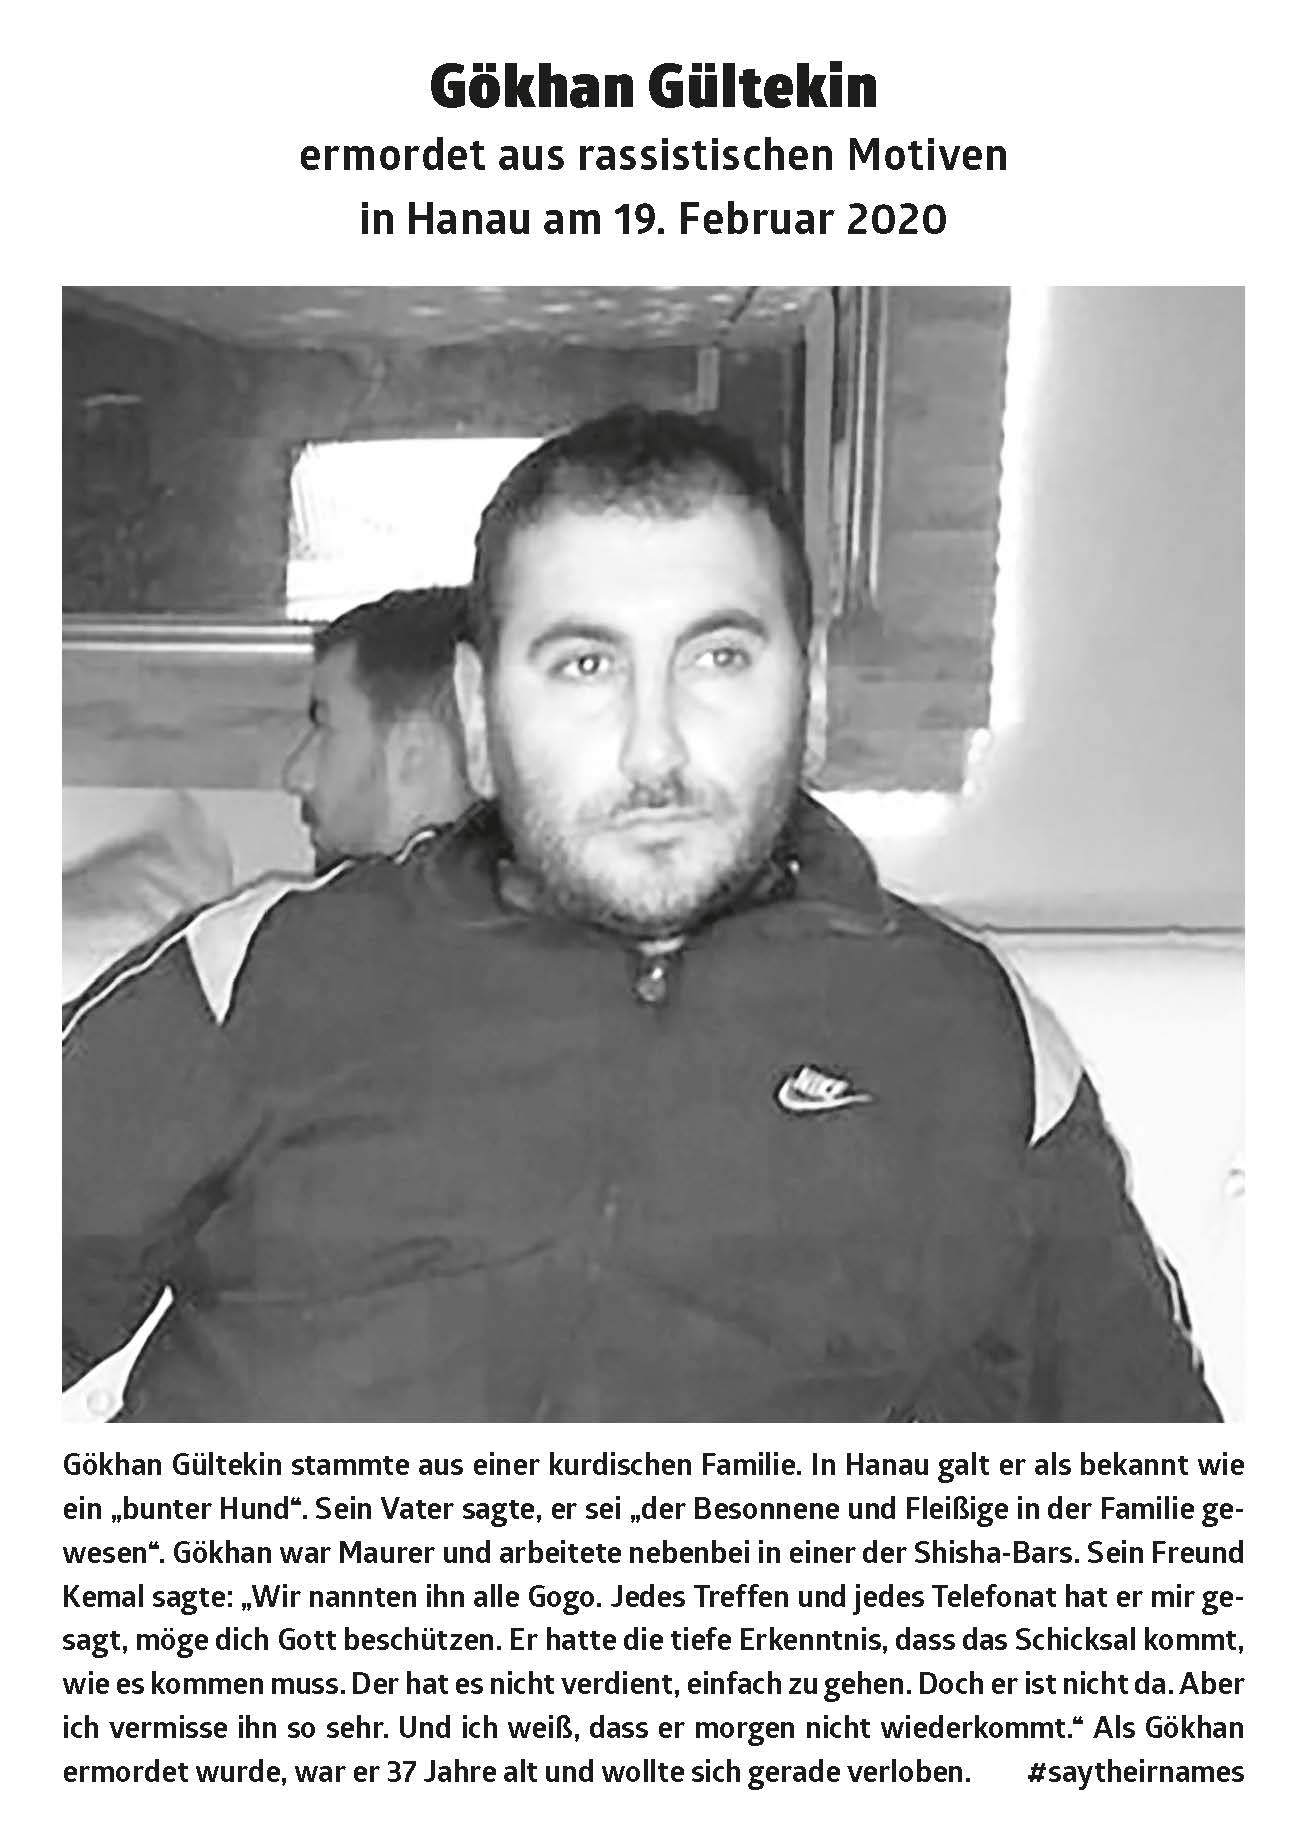 "Gökhan Gültekin came from a Kurdish family. In Hanau he was known as a ""colorful dog"". His father said he was ""the level-headed and hardworking in the family"". Gökhan was a bricklayer and also worked in one of the shisha bars. His friend Kemal said: ""We all called him Gogo. He told me every meeting and every phone call, may God protect you. He had a deep understanding that fate is coming as it must. He didn't deserve to just go. But he is not there. But I miss him so much. And I know that he won't be back tomorrow. ""When Gökhan was murdered, he was 37 years old and was about to get engaged."